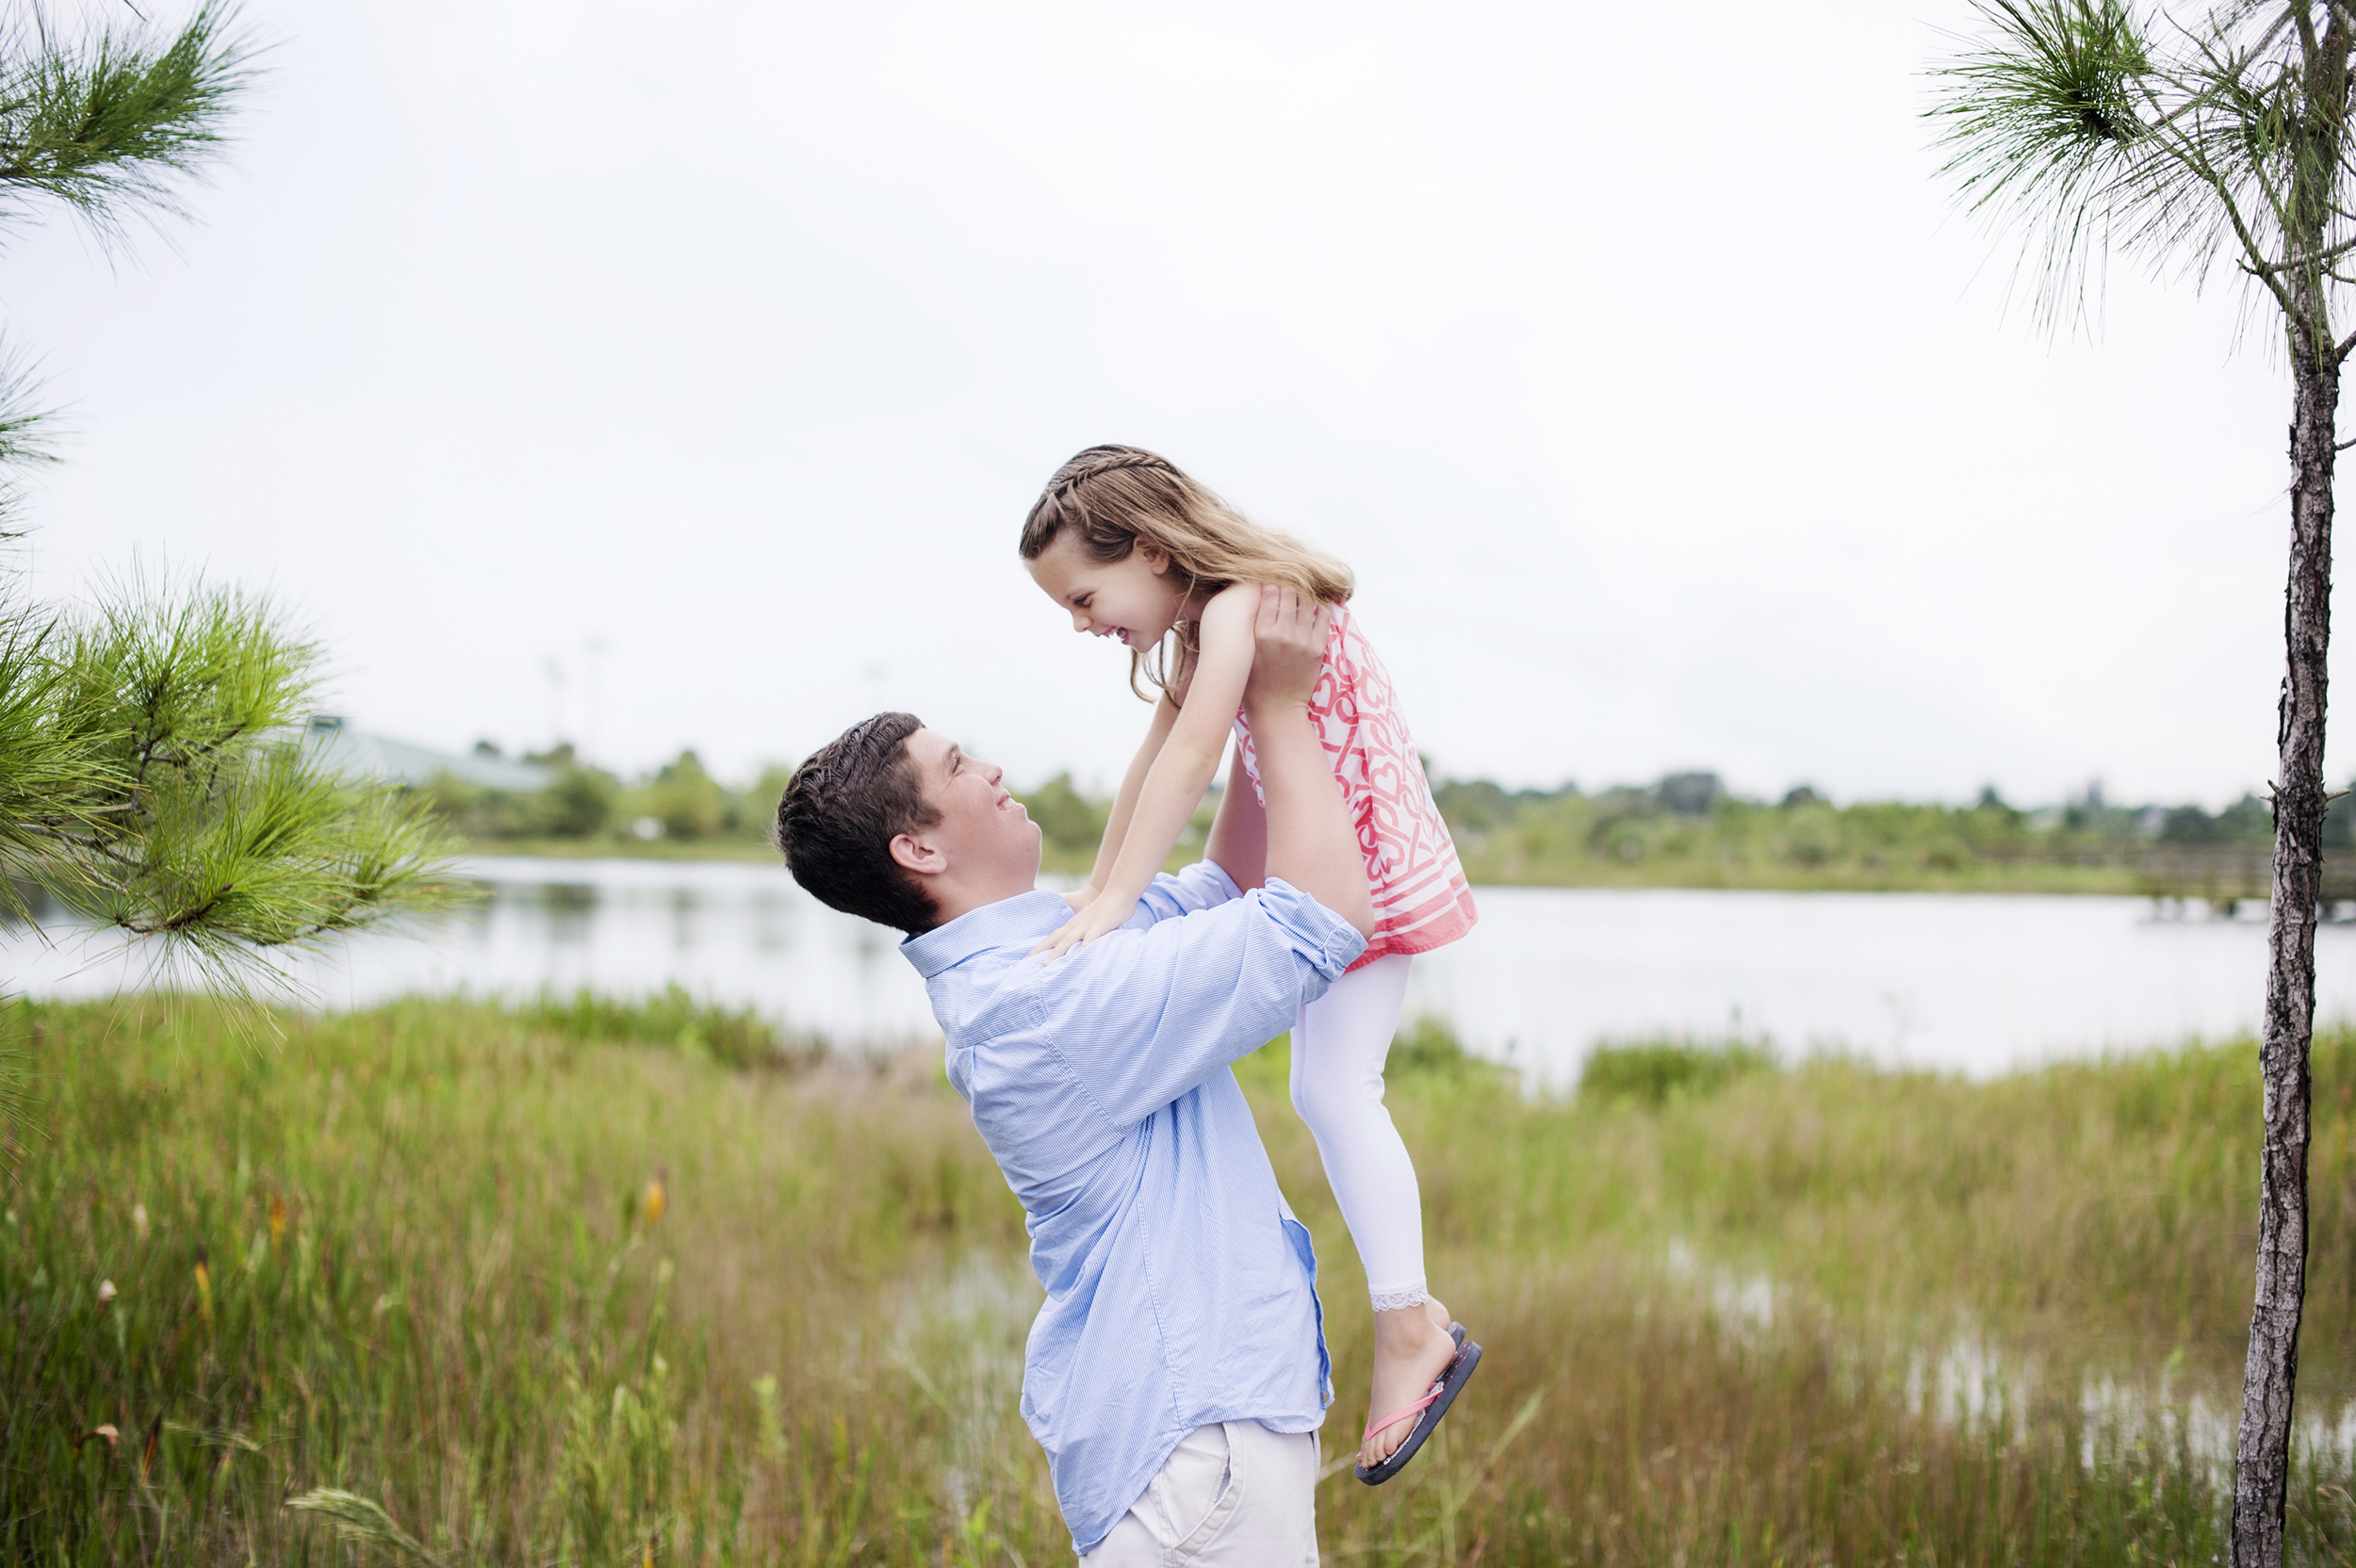 child-photography-south-florida-alison-frank-photography_01.jpg